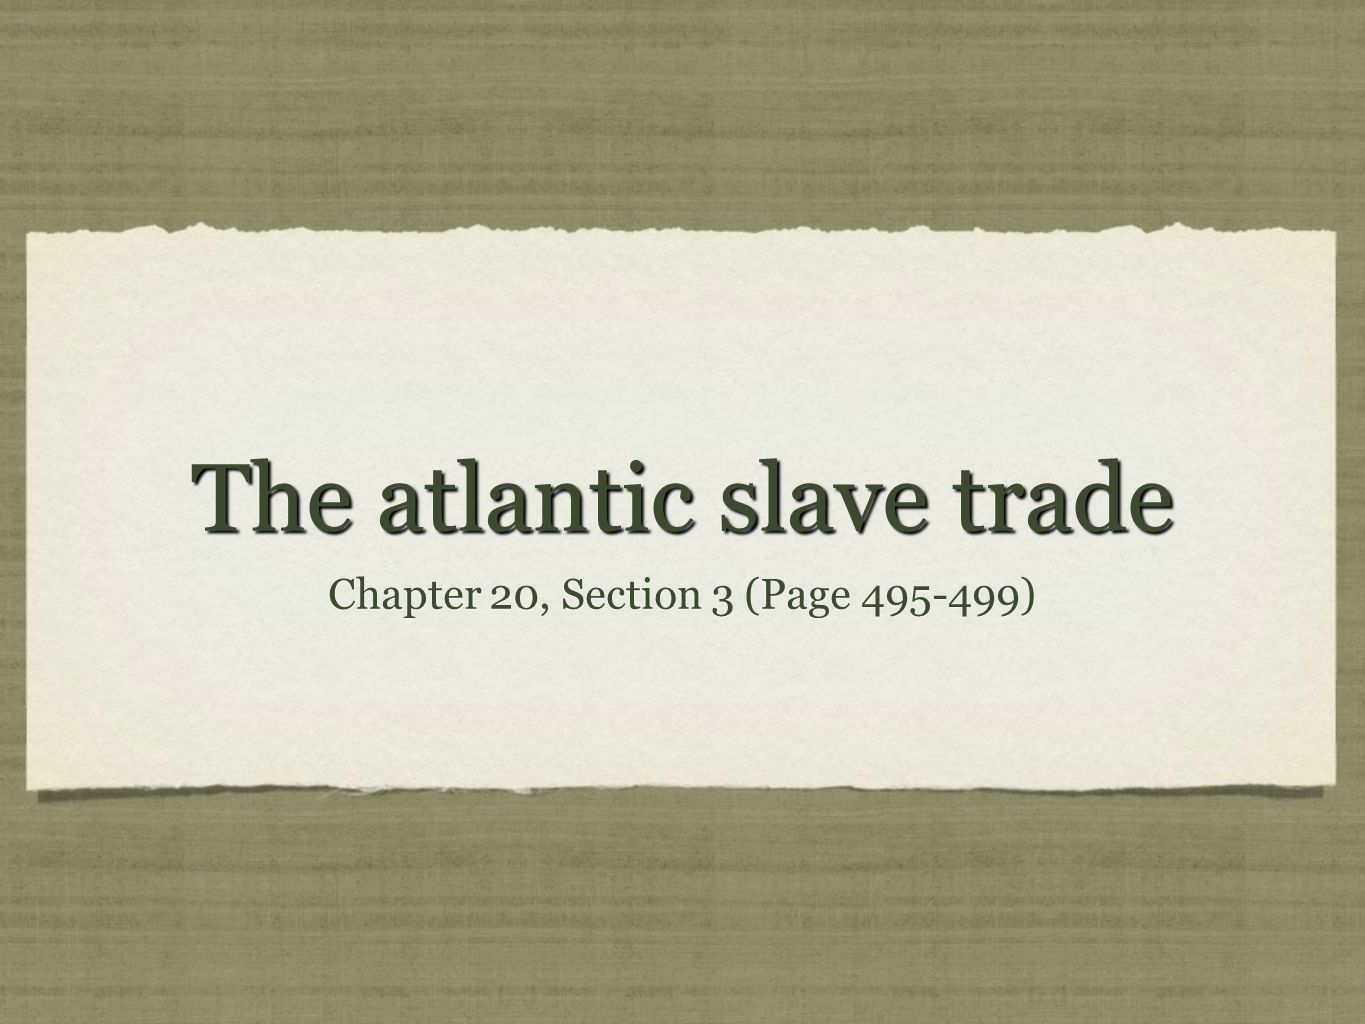 The atlantic slave trade Chapter 20, Section 3 (Page 495-499)